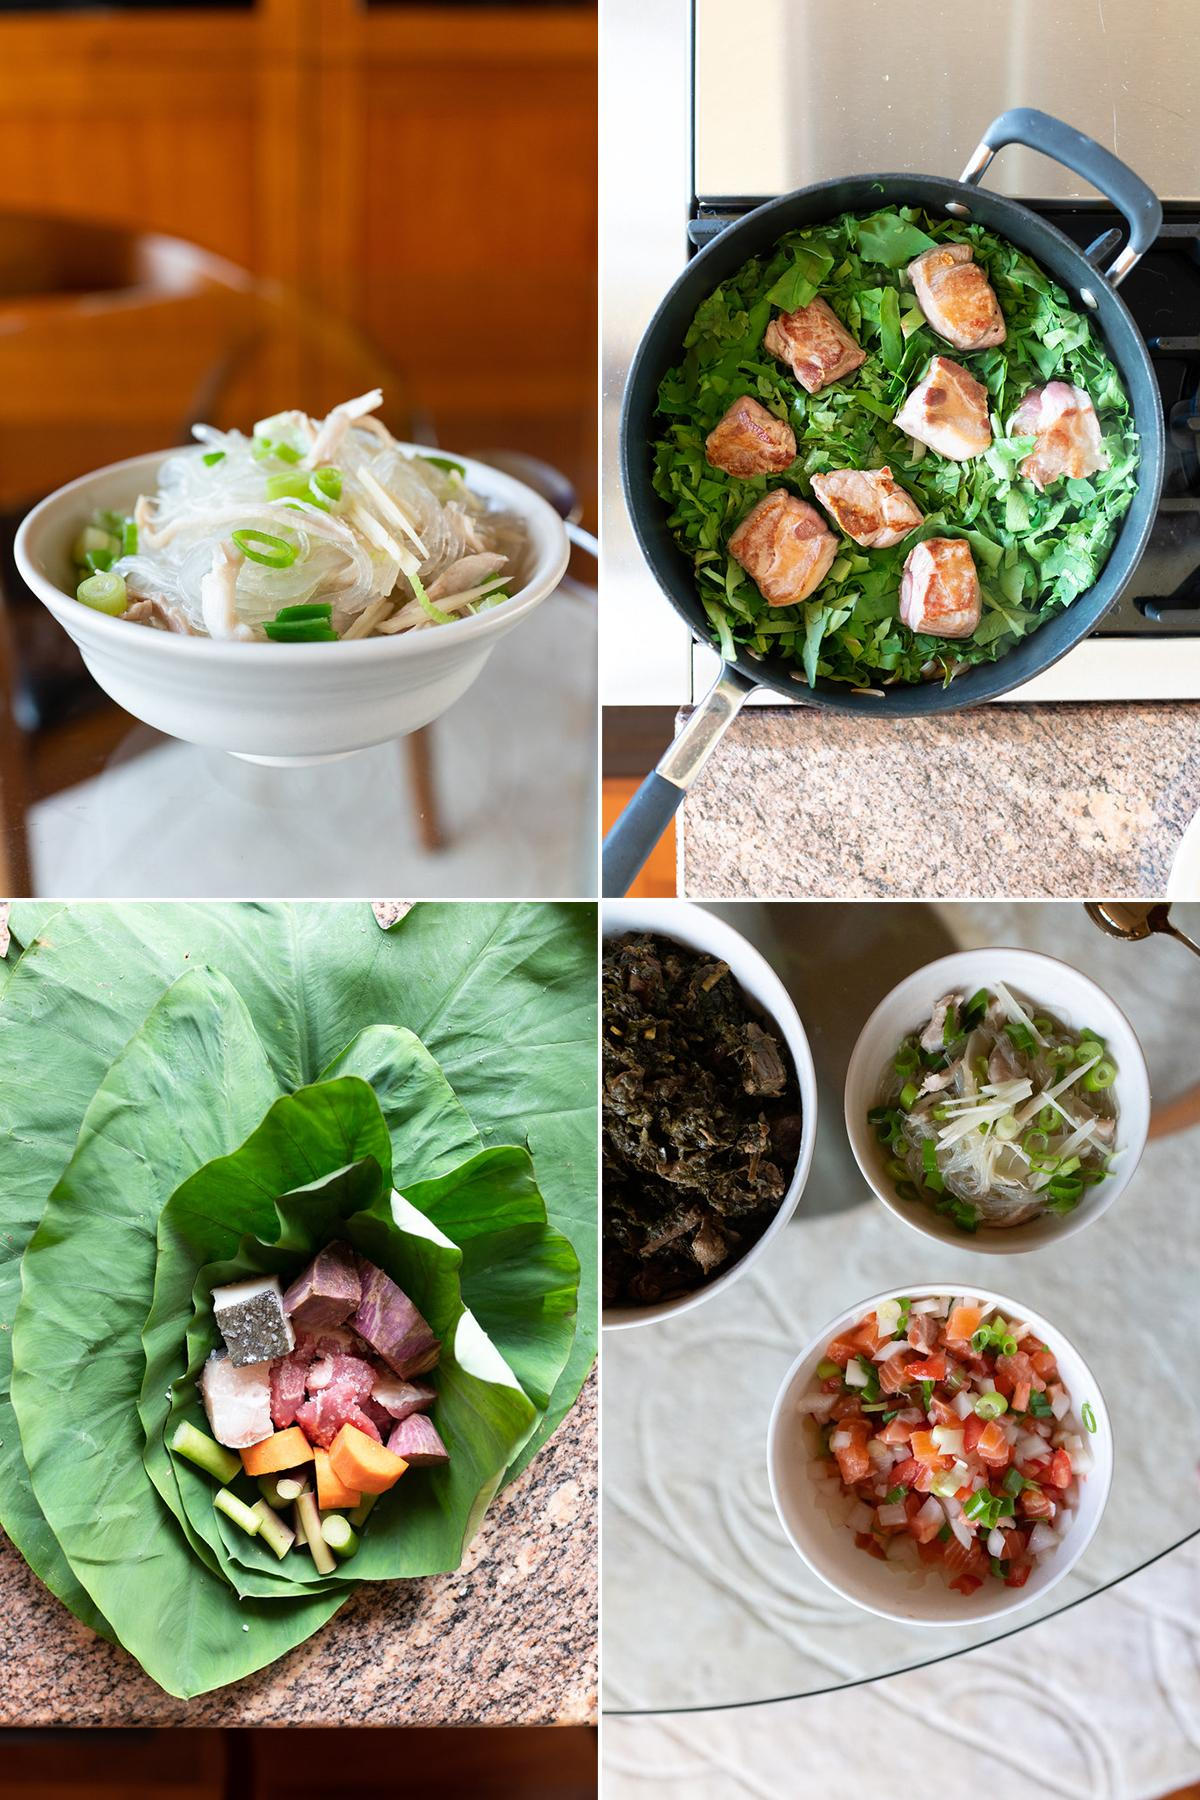 Collage of Hawaiian dishes. Clockwise from top-left: chicken long rice, luau stew, lau lau, and lomi lomi salmon.